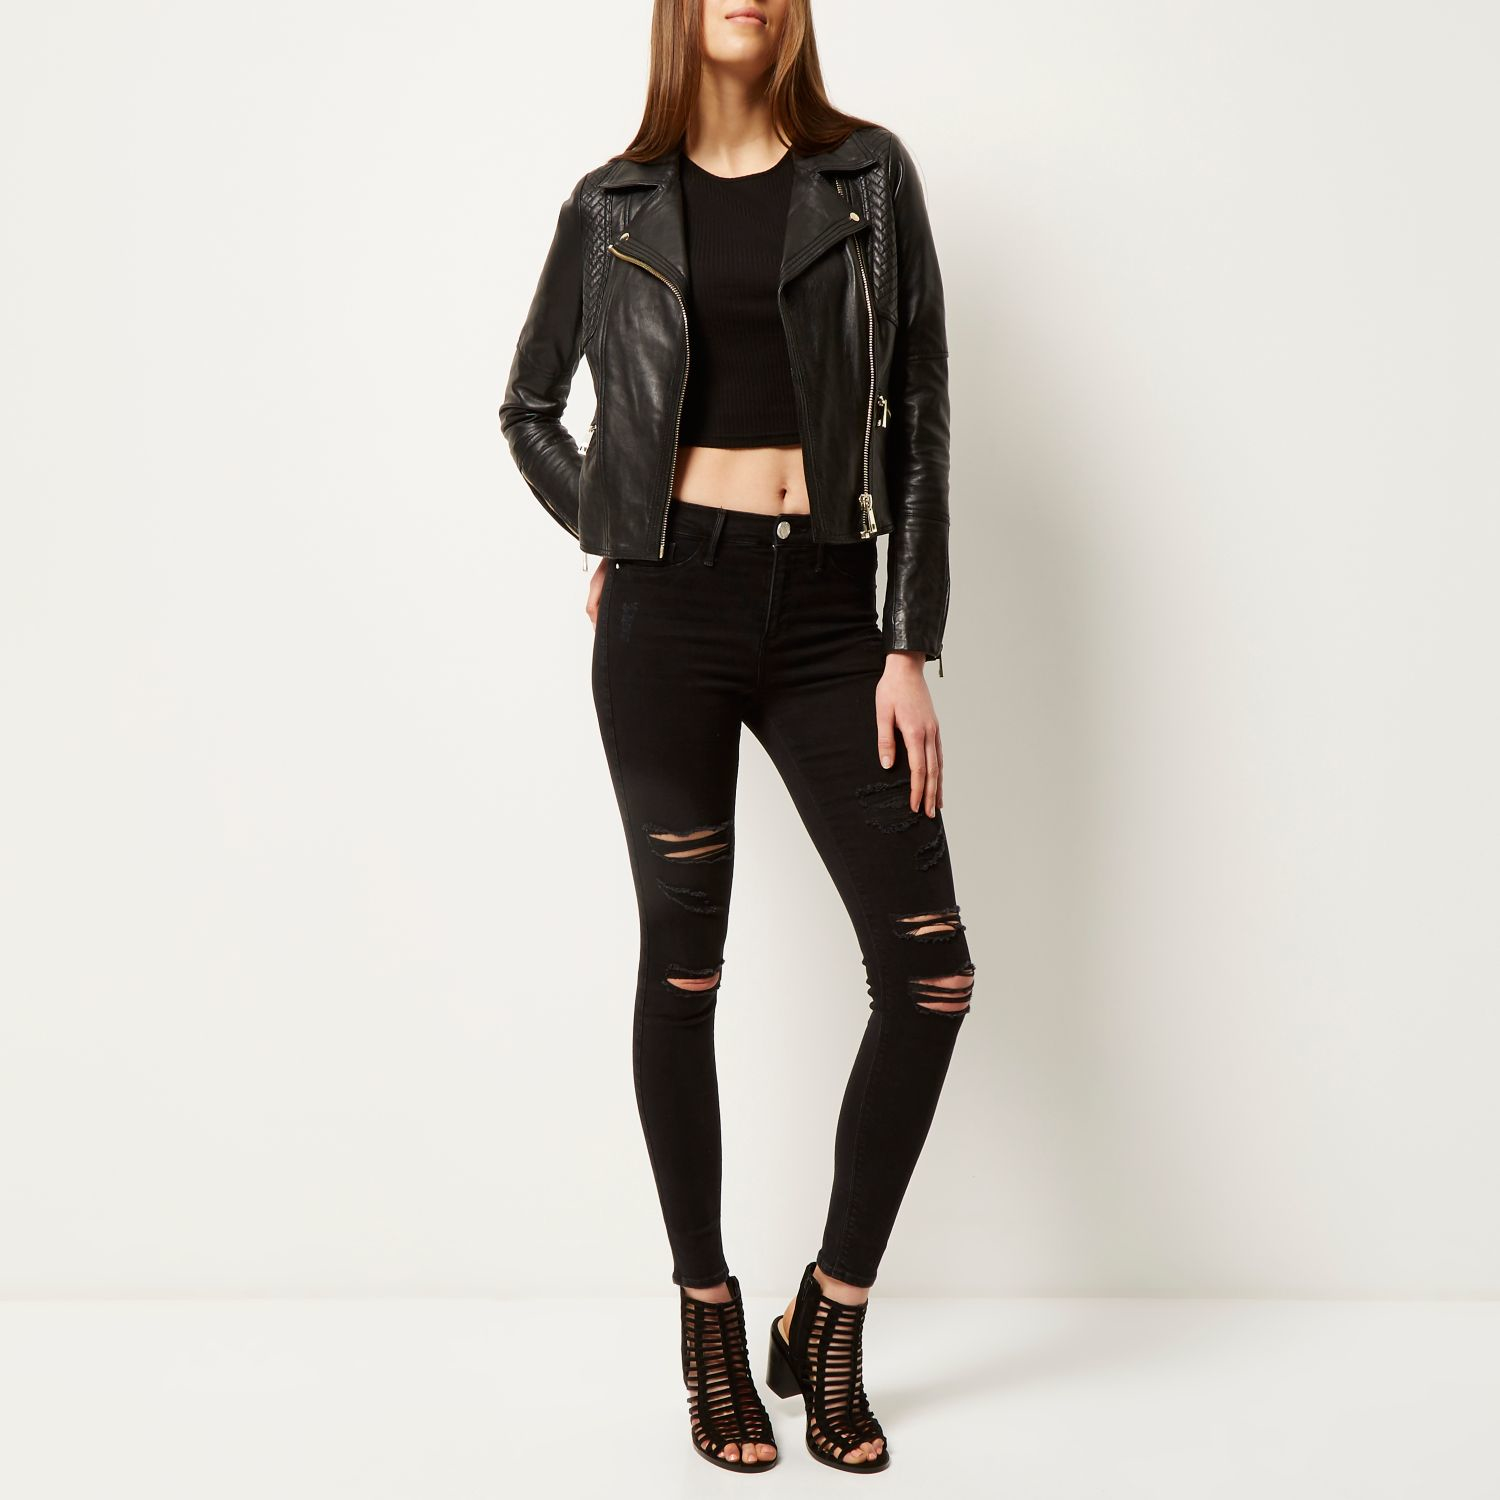 368ffe90b0319 River Island Black Super Ripped Molly Jeggings in Black - Lyst